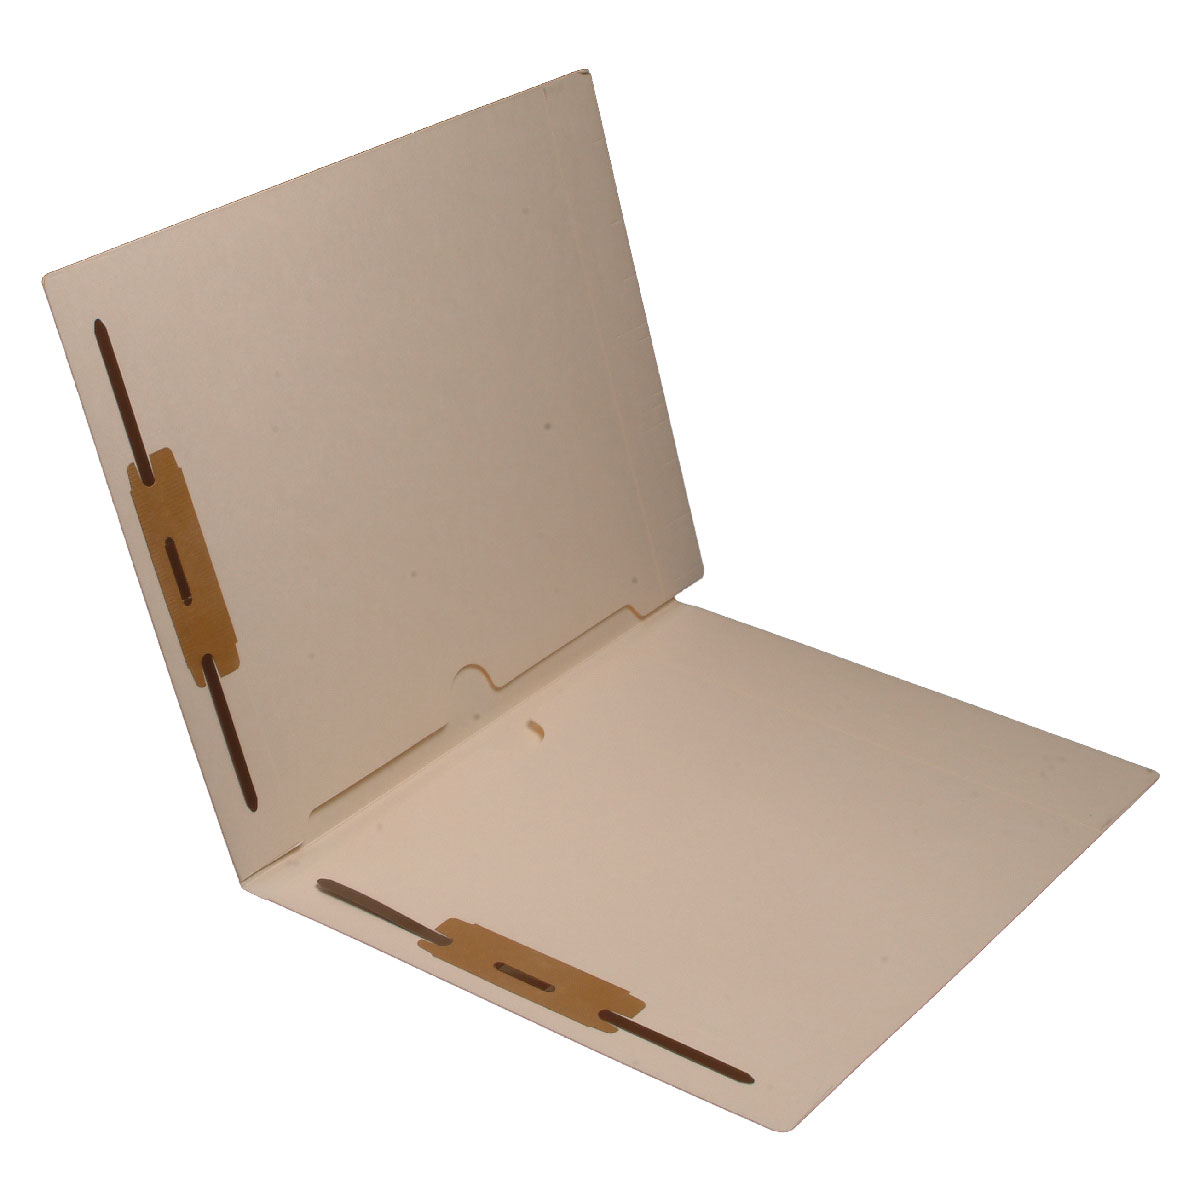 S-9068 - 11 pt Manila Folders, Full Cut End Tab, Letter Size, Full Pocket Front and Back, Fasteners Pos #1 & #3 (Box of 50)